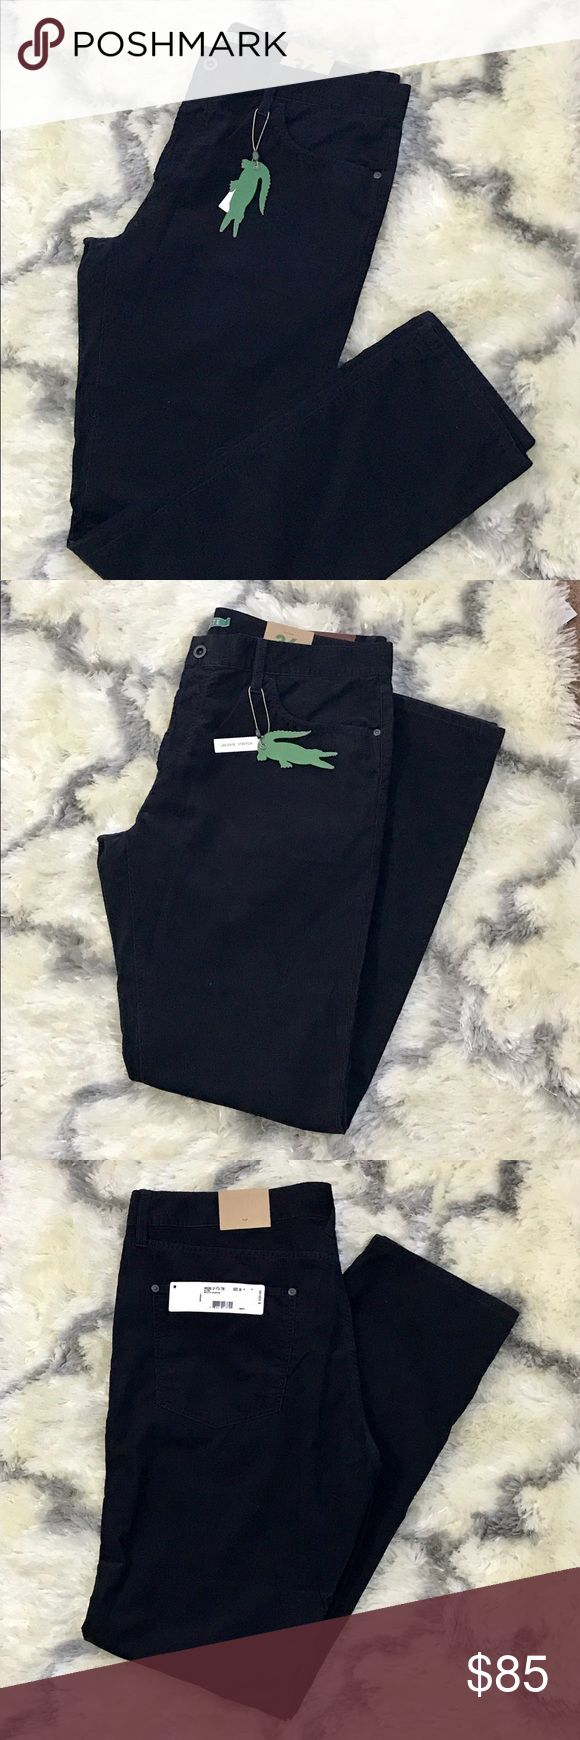 Lacoste Corduroy Pants NWT navy blue corduroy button fly pants. Size 36 in US. Waistline is 38, Inseam is 33. Lacoste Pants Corduroy